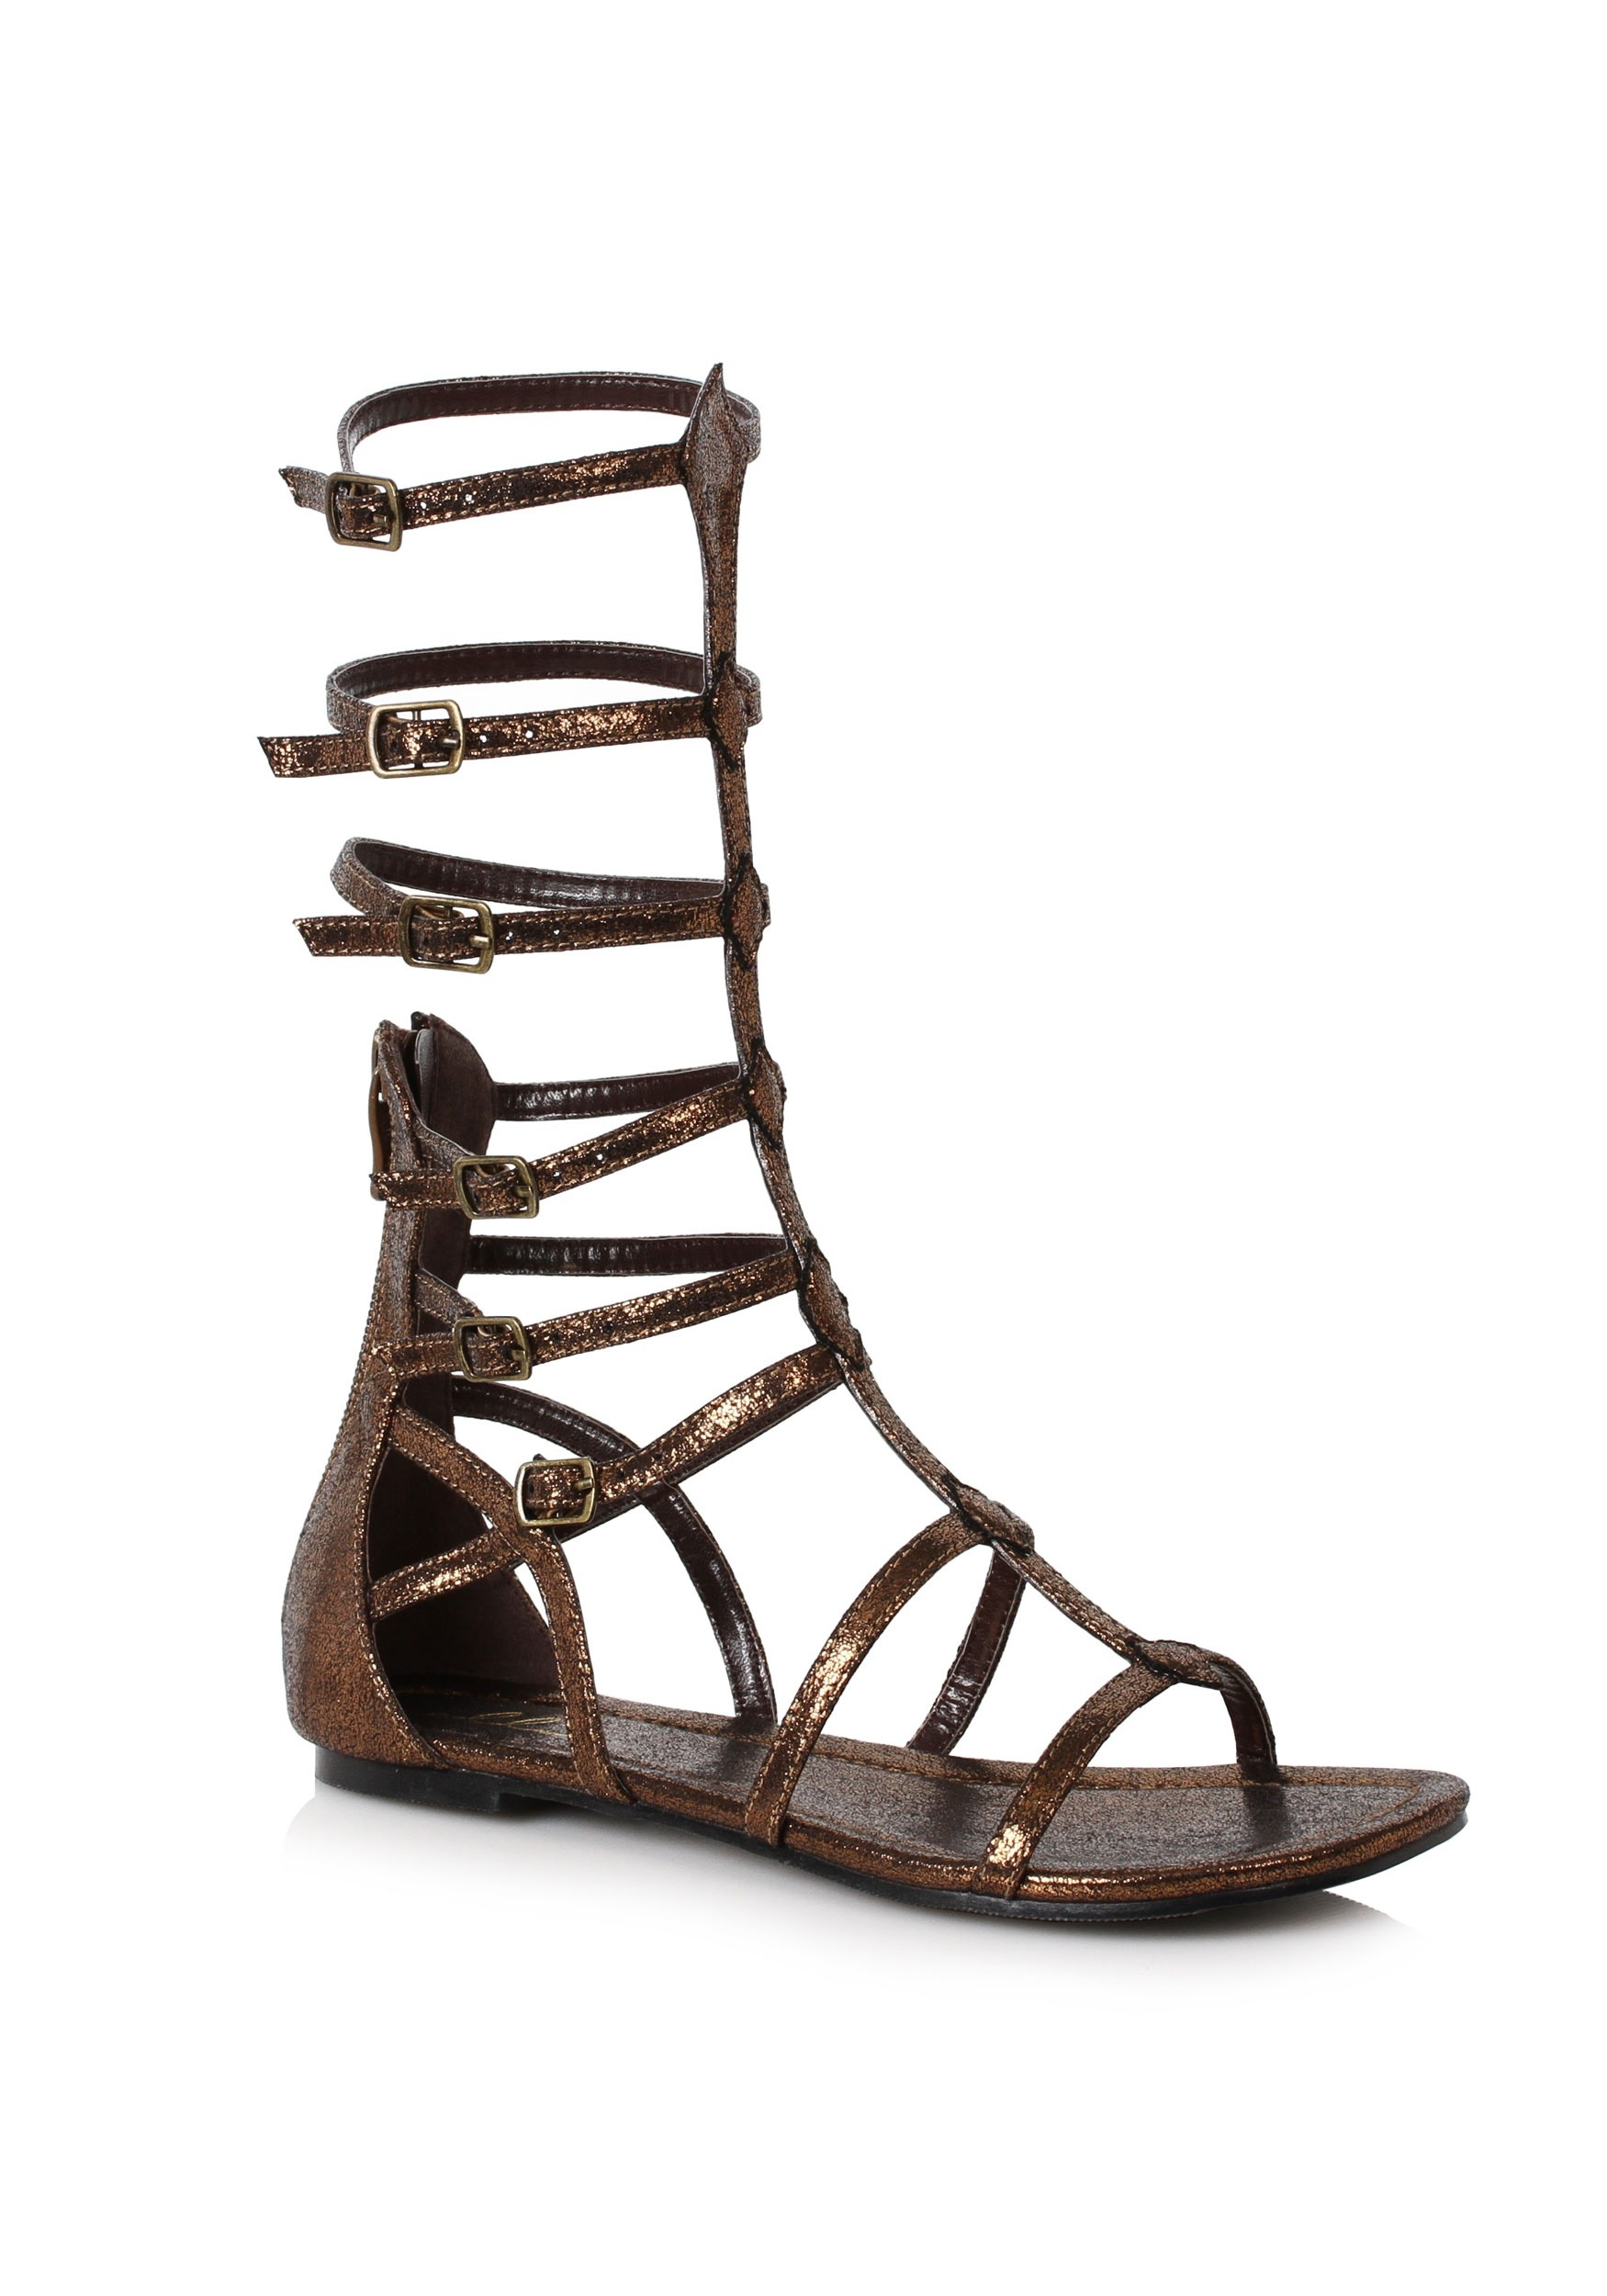 Bronze Warrior Sandals for Adults